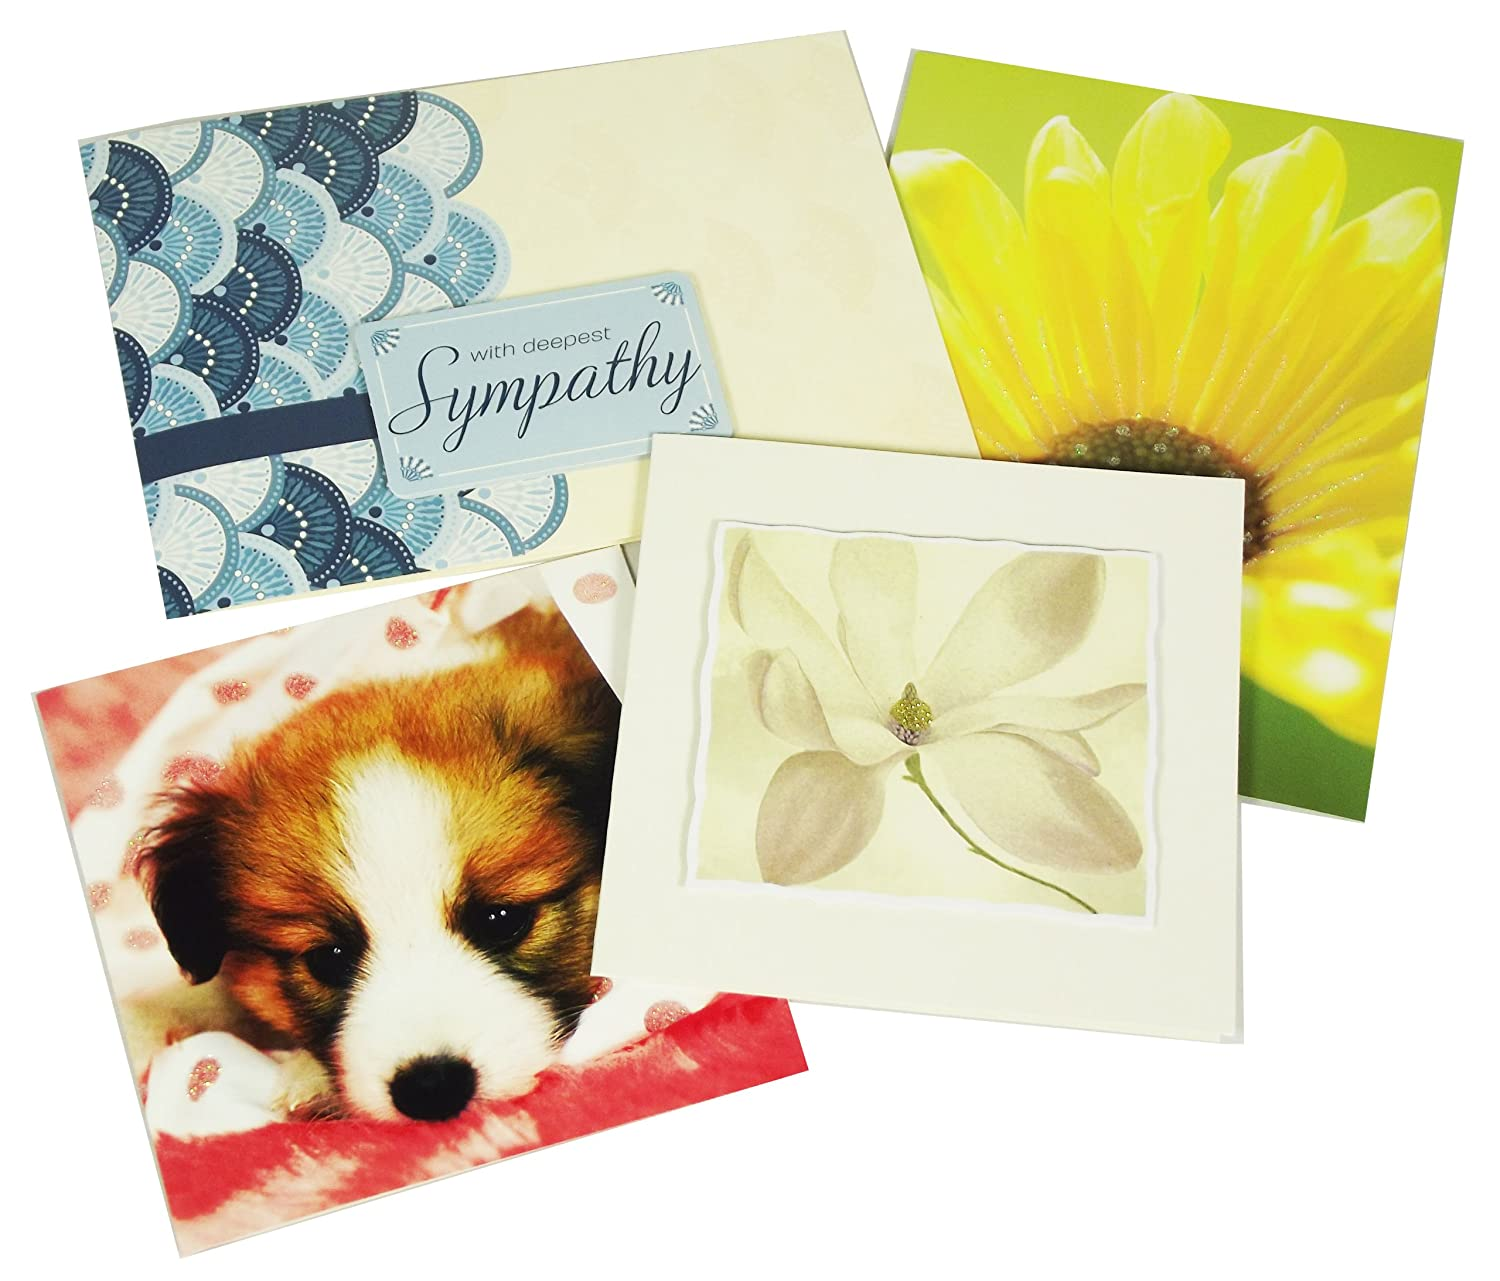 Paper magic all occasion handmade greeting card assortment in paper magic all occasion handmade greeting card assortment in keepsake organizer box 25 cards 2333225 amazon office products m4hsunfo Gallery